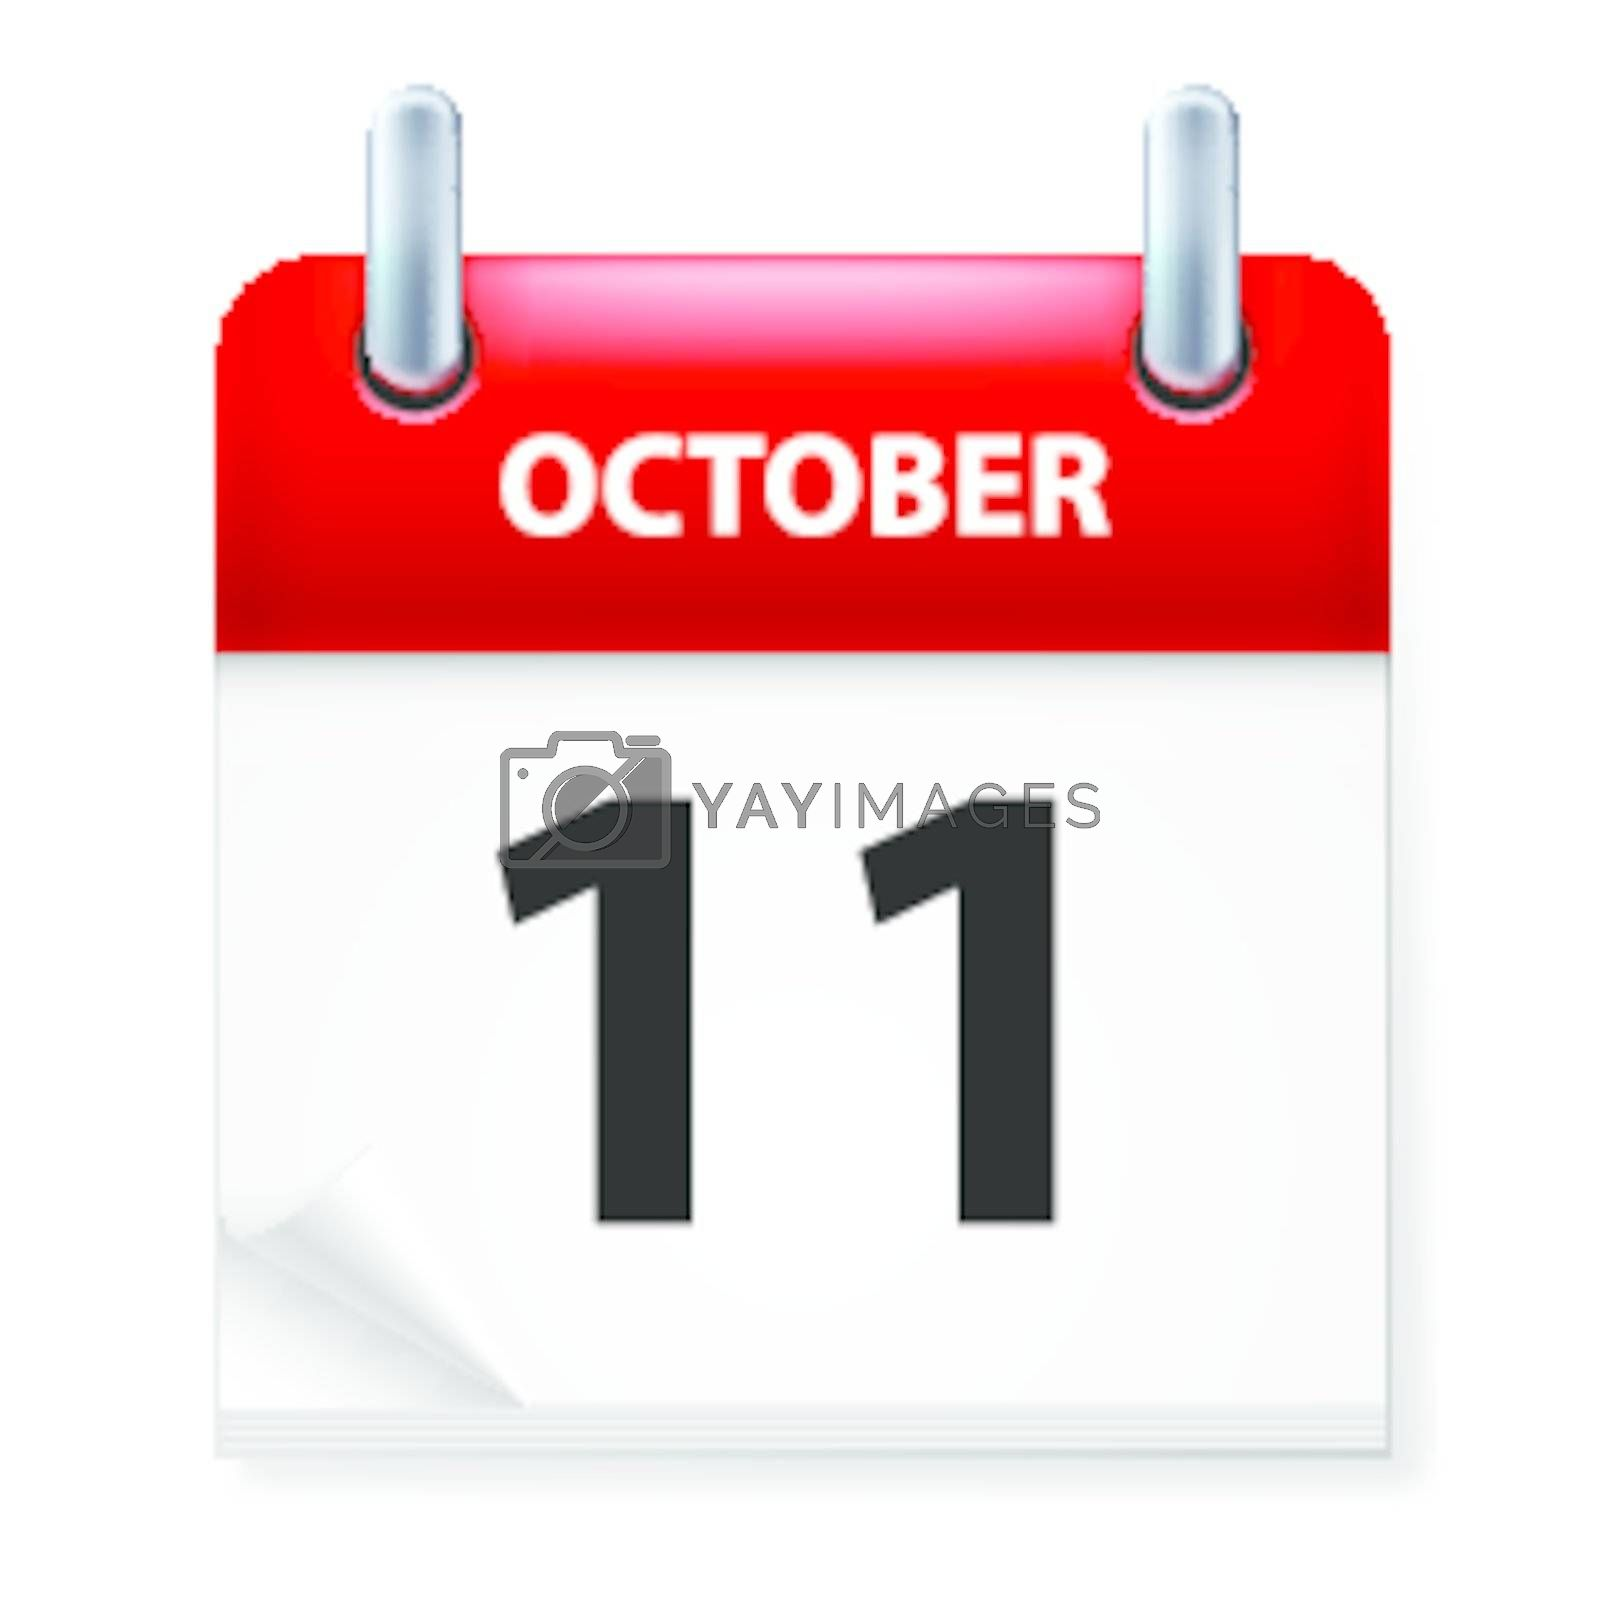 Eleventh October in Calendar icon on white background